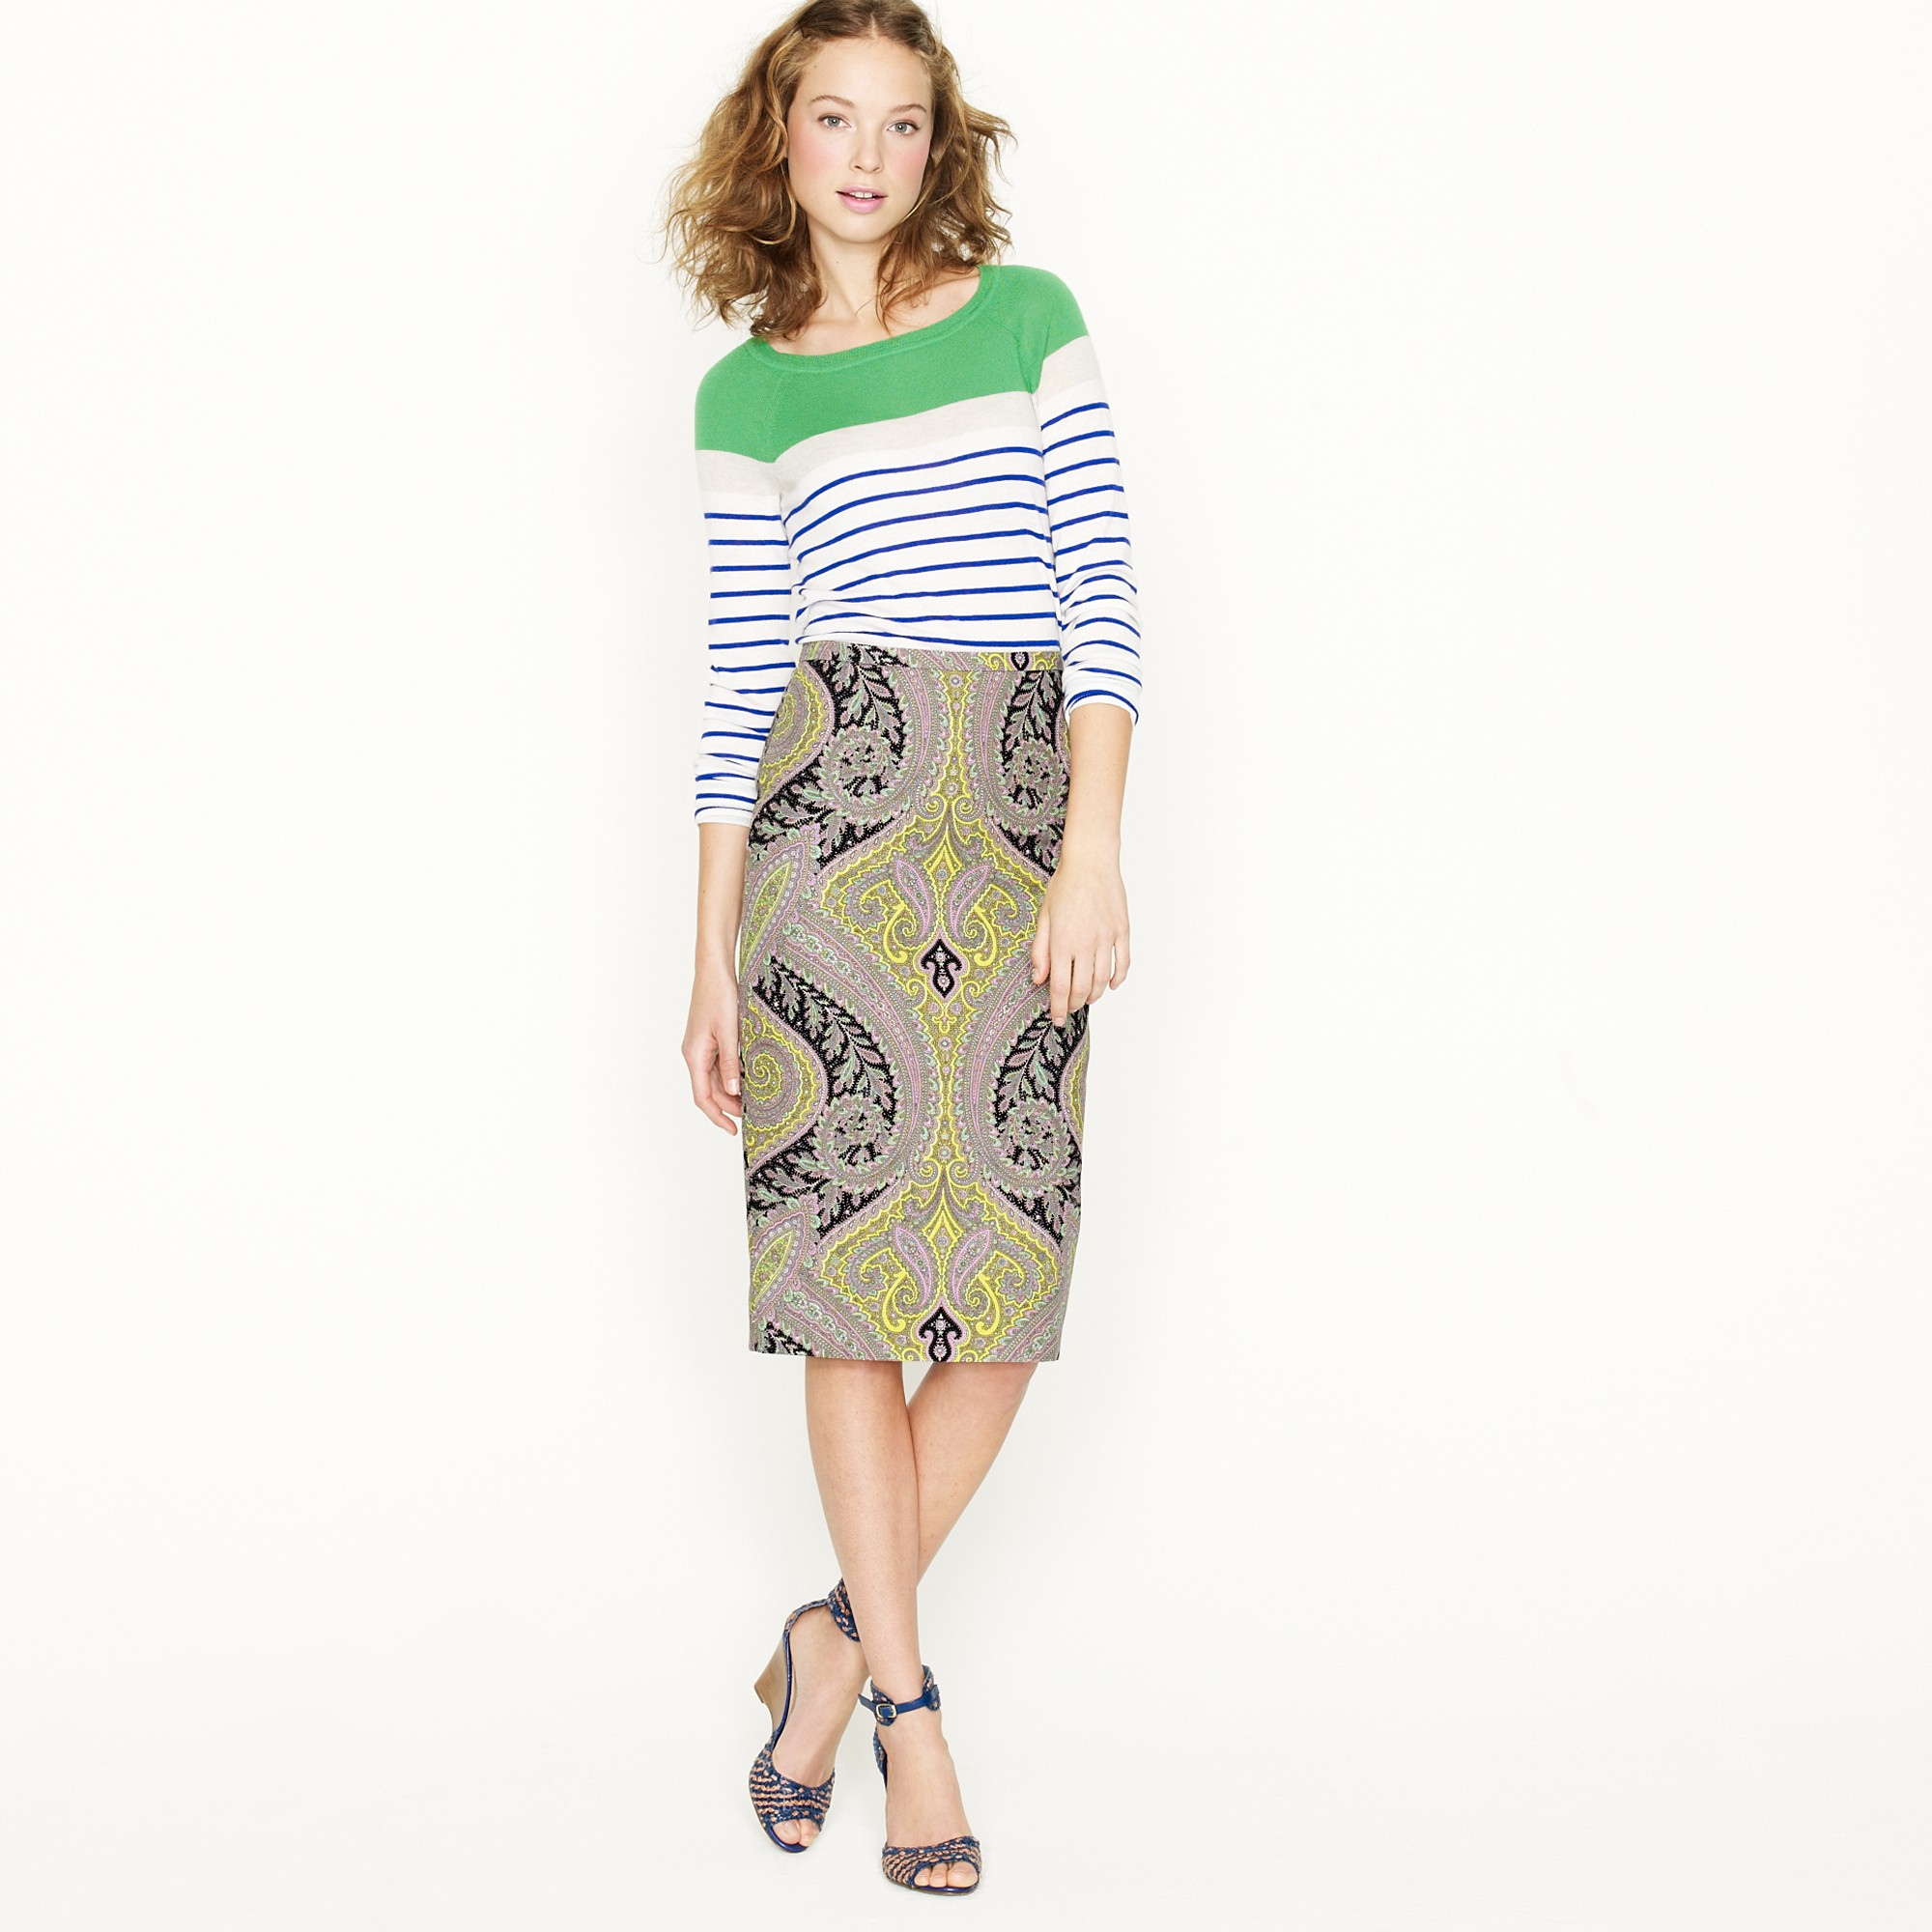 j crew no 2 pencil skirt in sovereign paisley in